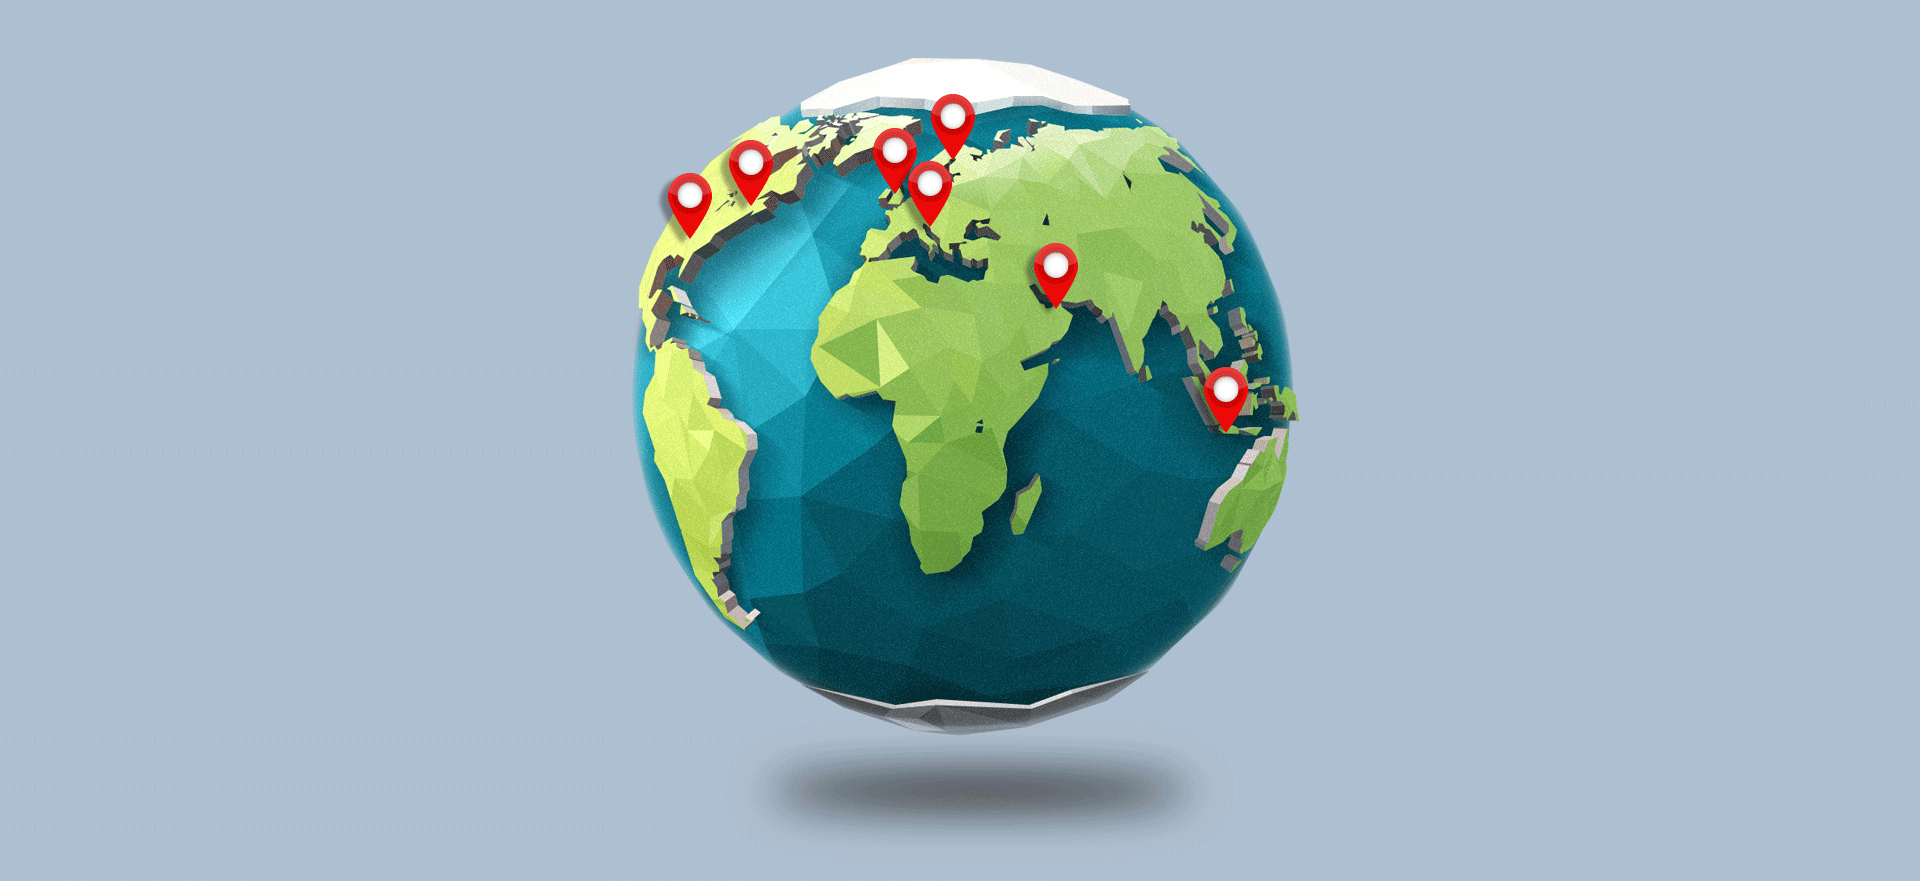 4 Ways to Prepare for a Multi-Location Event